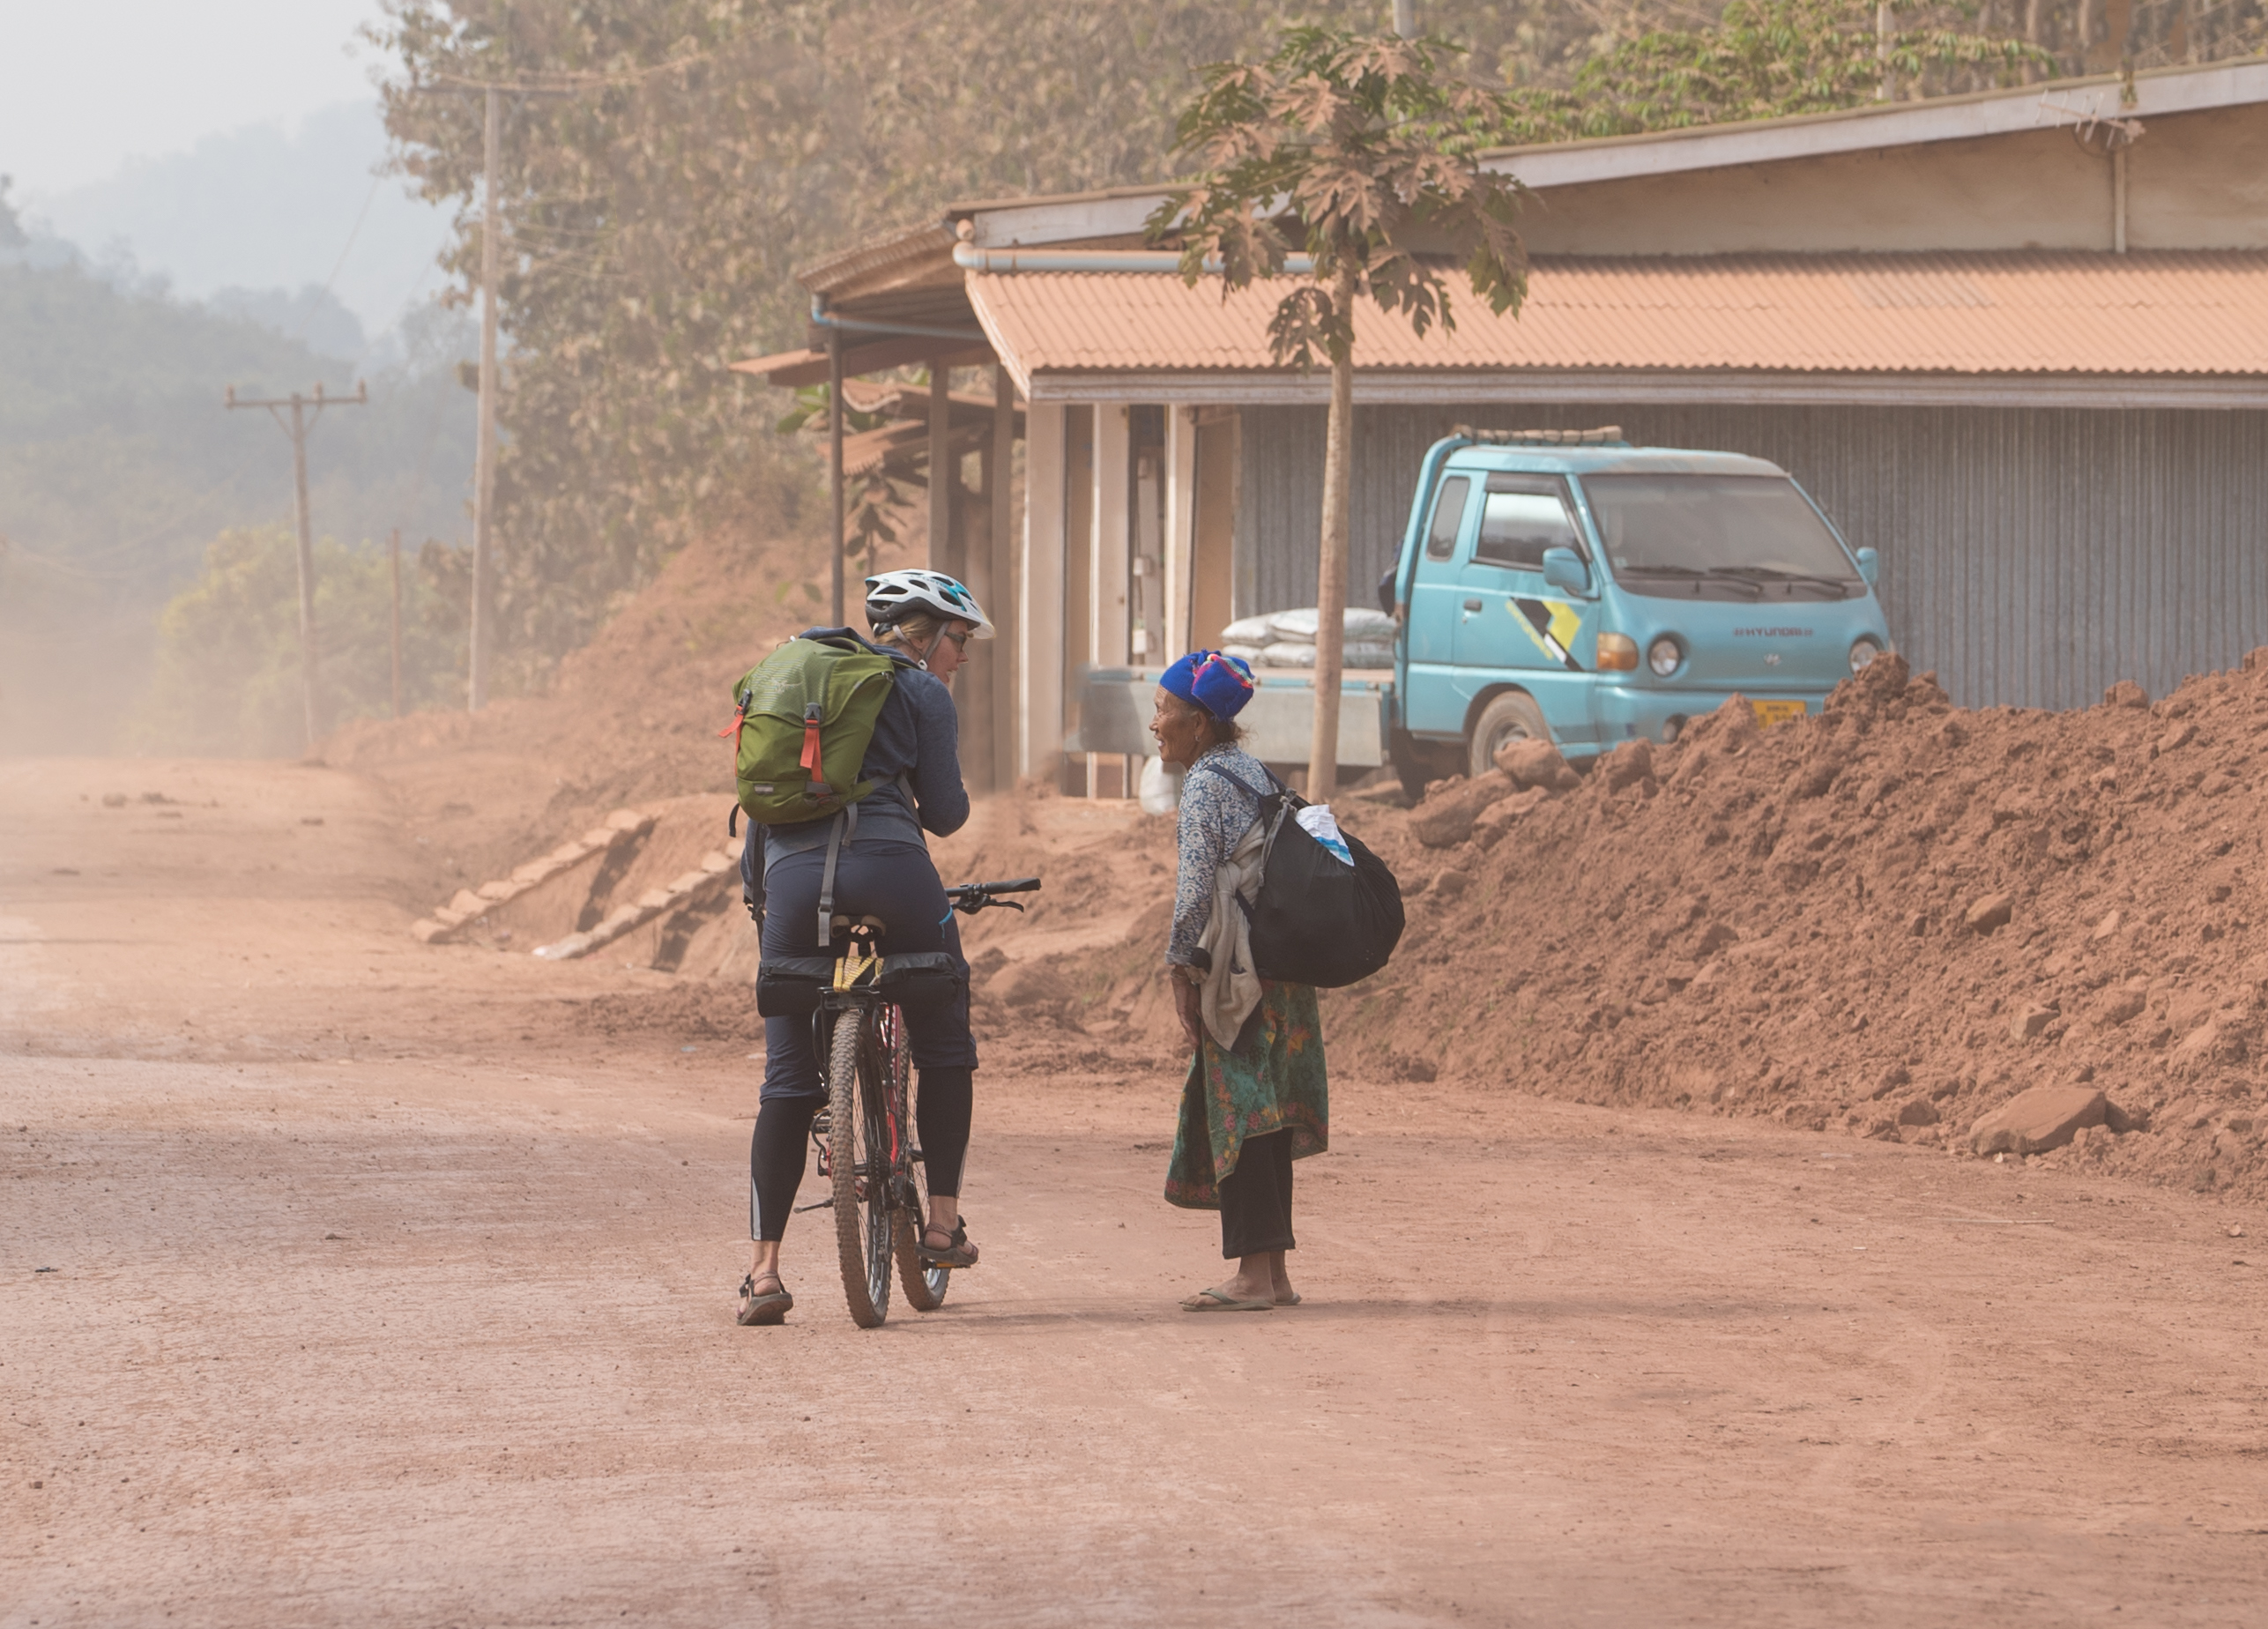 laos-biking-bicycle-cycling-lao-pdr-dirt-road-local-villager